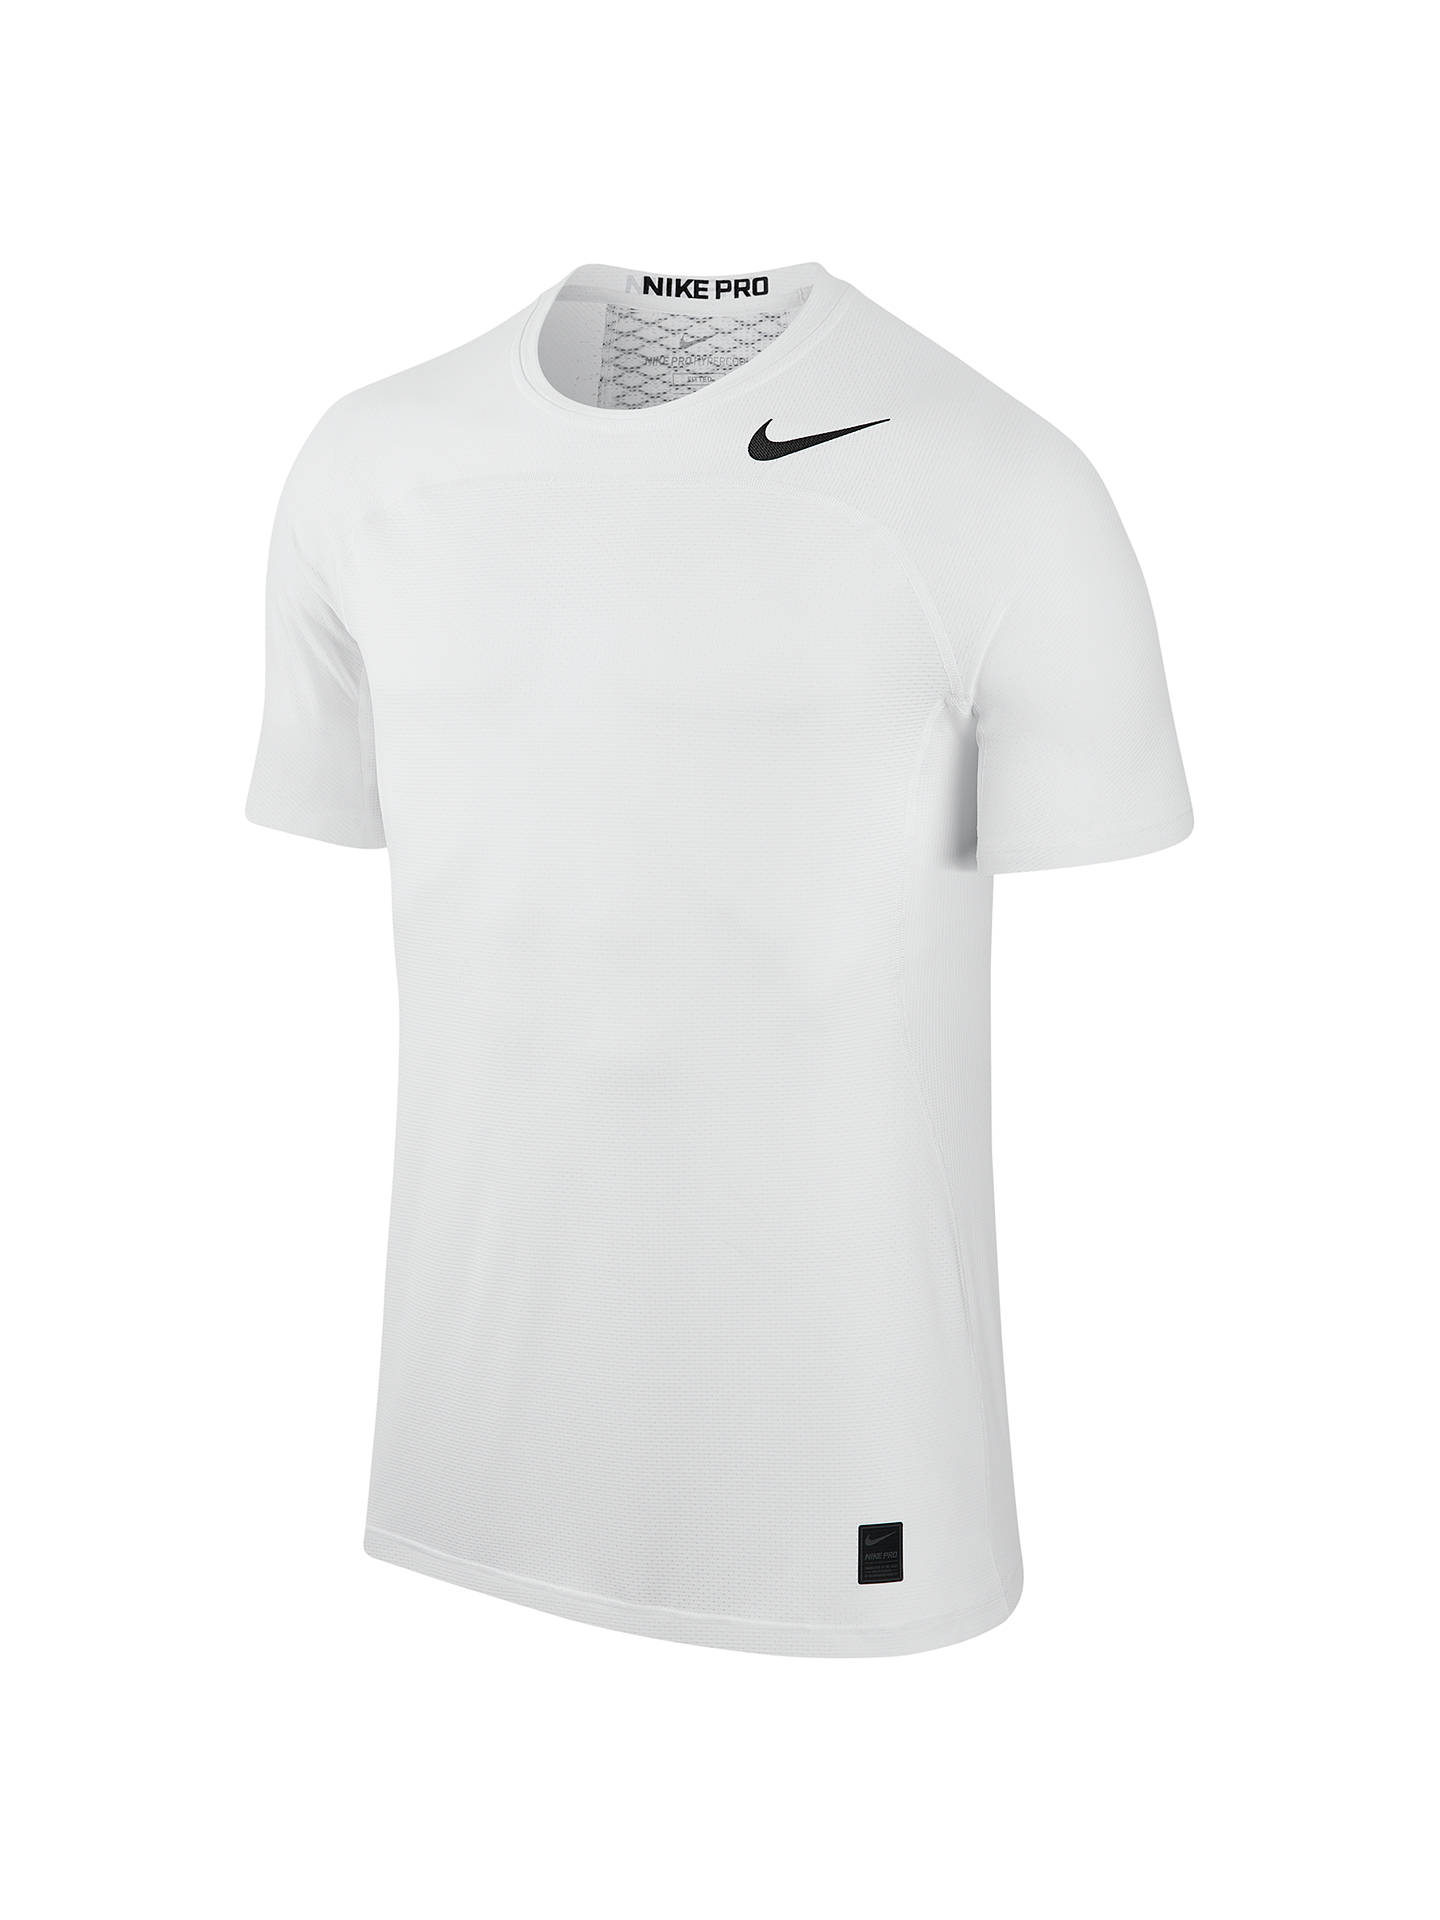 cdf440d2 Buy Nike Pro Hypercool Training Top, White, S Online at johnlewis.com ...